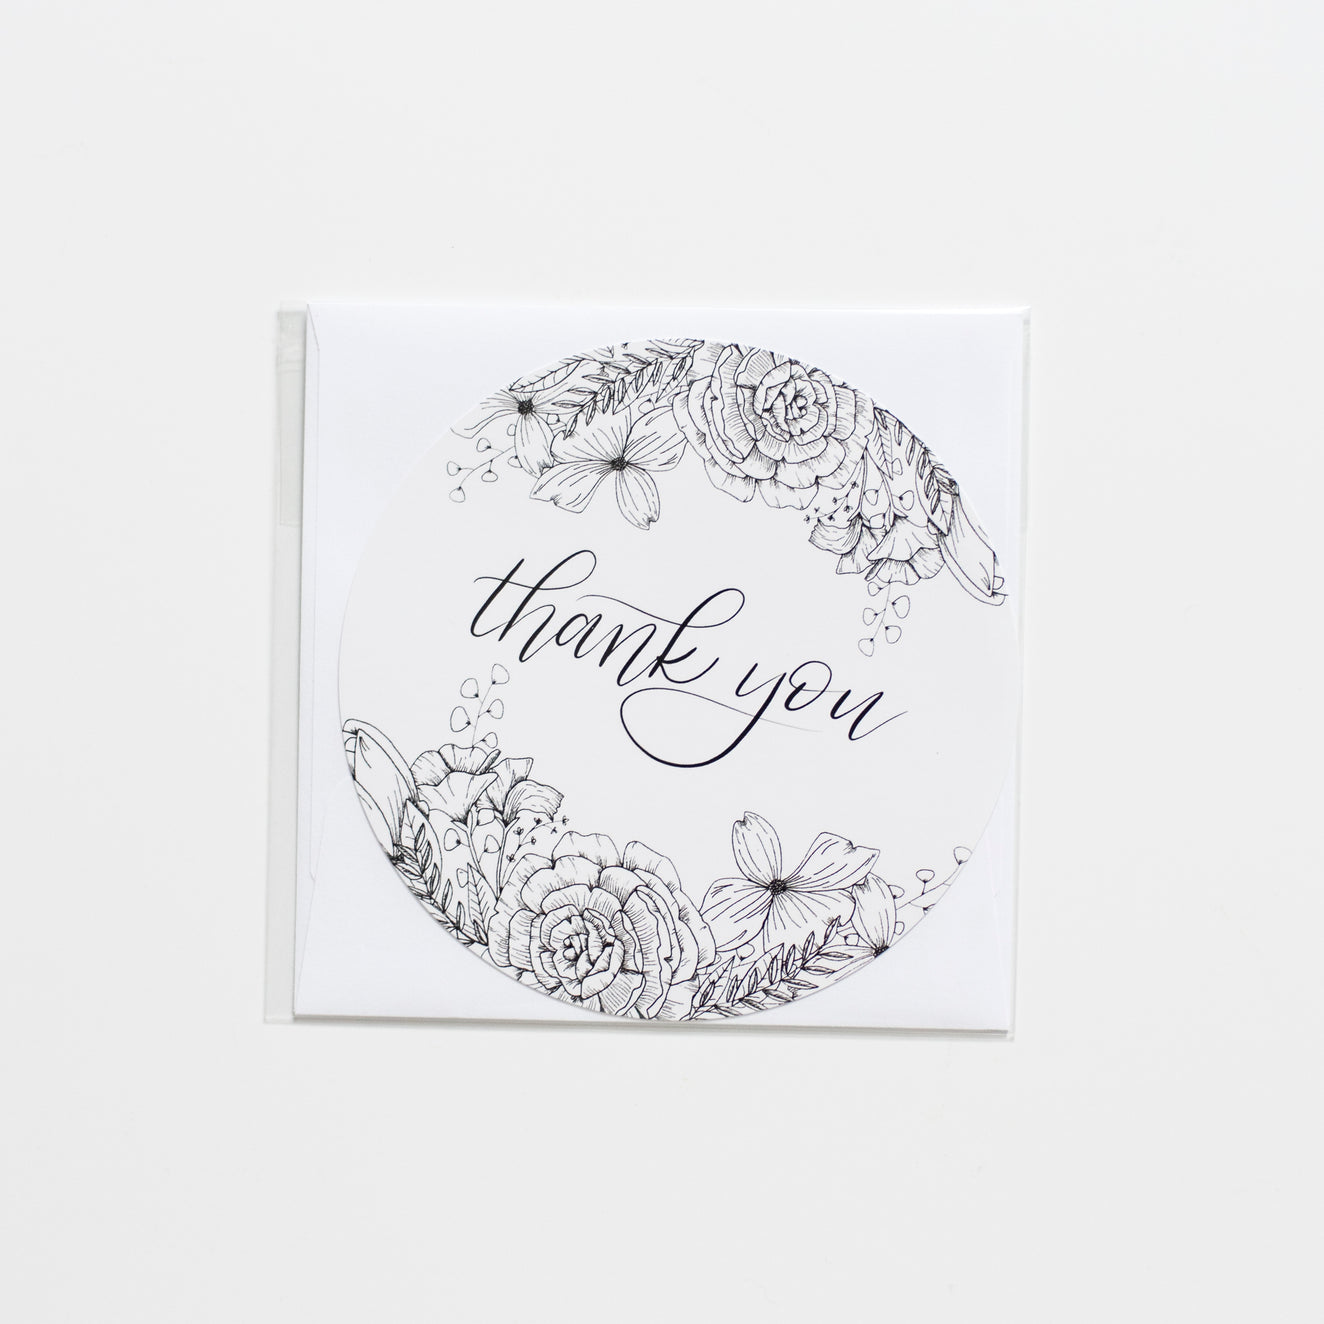 The House of Roushey: Thank You Card